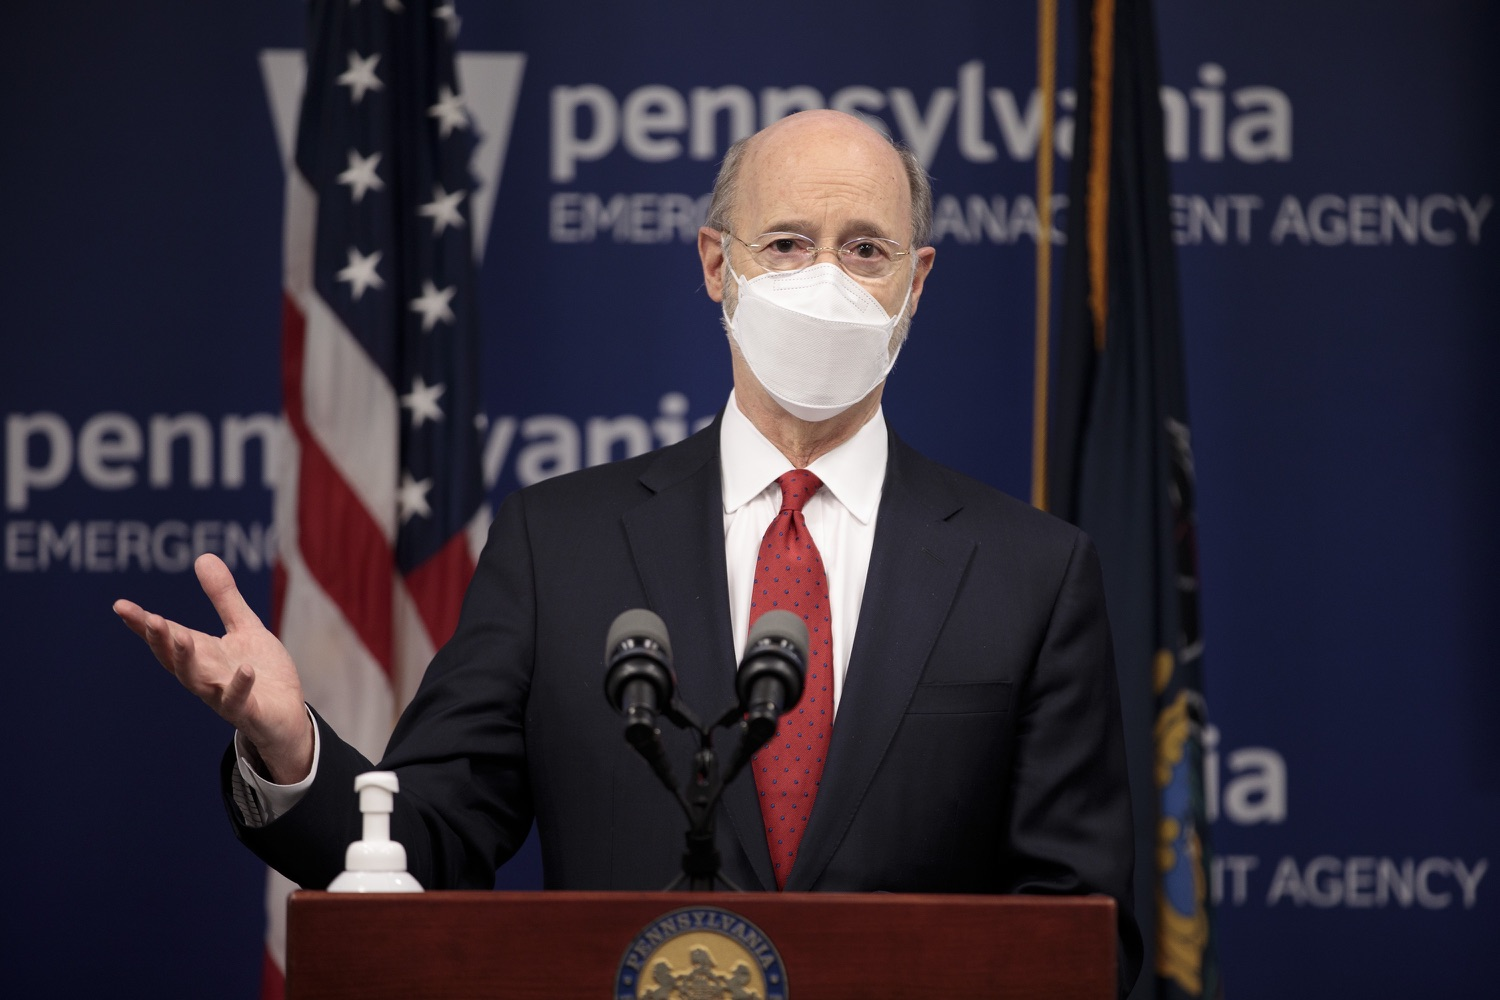 "<a href=""https://filesource.wostreaming.net/commonwealthofpa/photo/18540_gov_backtowork_dz_04.jpg"" target=""_blank"">⇣ Download Photo<br></a>Pennsylvania Governor Tom Wolf speaking at the press conference. The COVID-19 global pandemic has significantly affected Pennsylvania workers, businesses and communities. To bolster economic recovery efforts and position Pennsylvania for economic growth, Governor Tom Wolf today unveiled his Back to Work PA plan.   Harrisburg, PA  February 22, 2021"